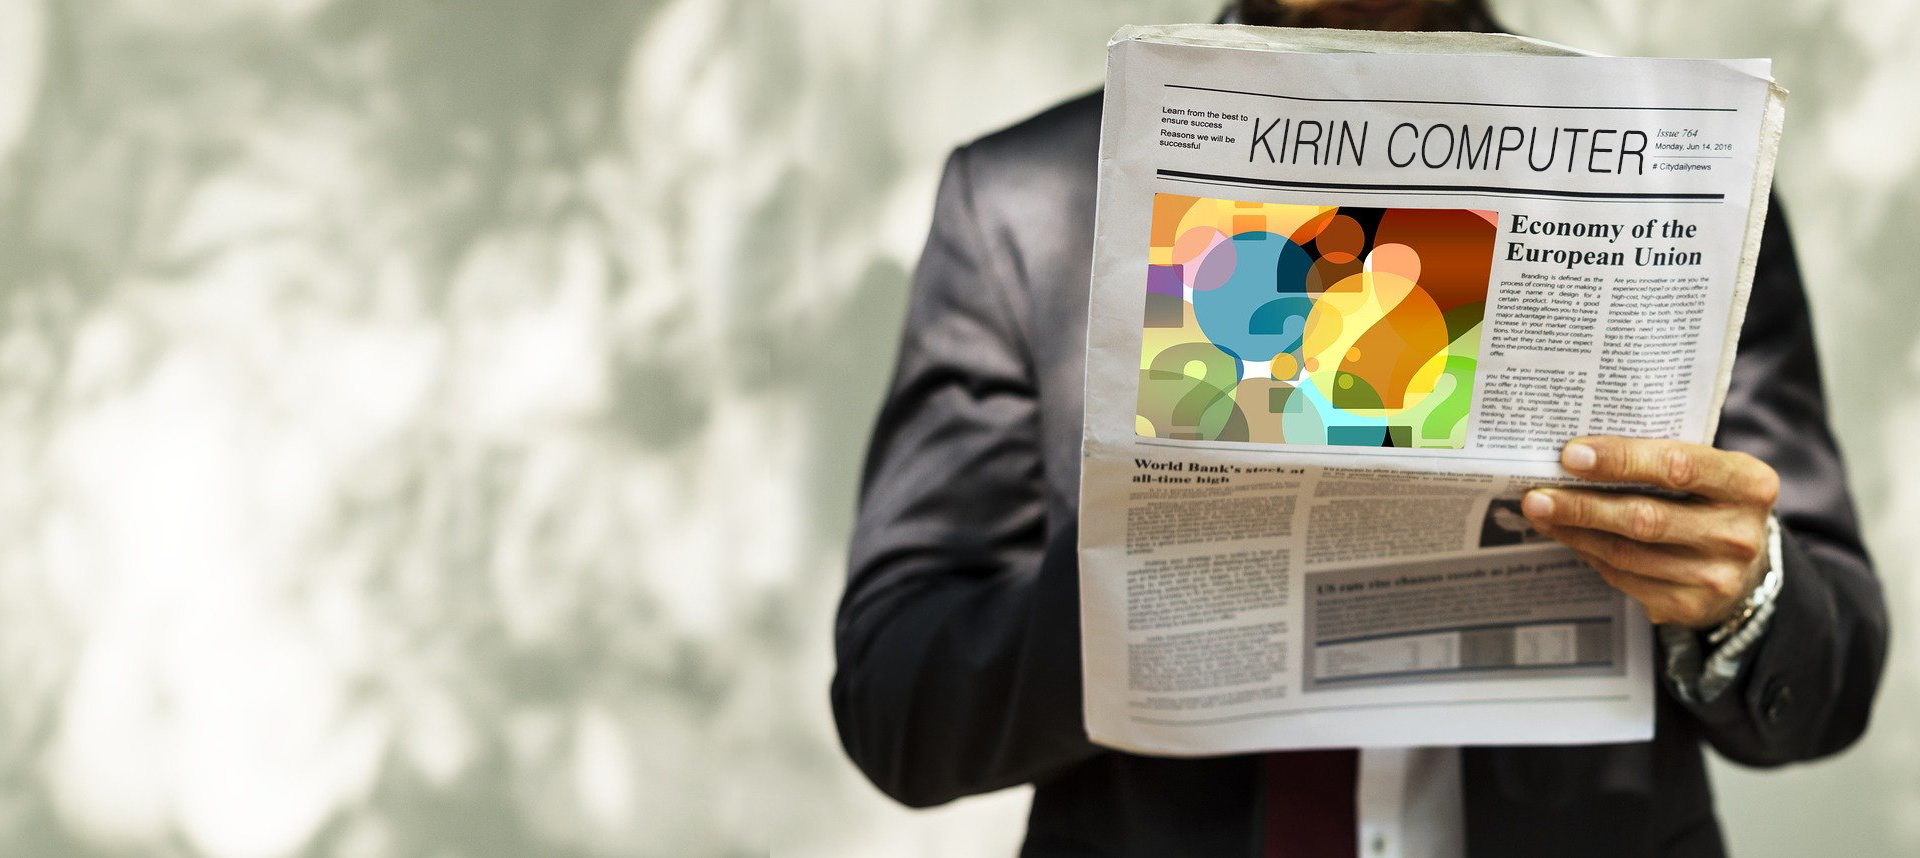 We deliver the press release of Kirin Company.